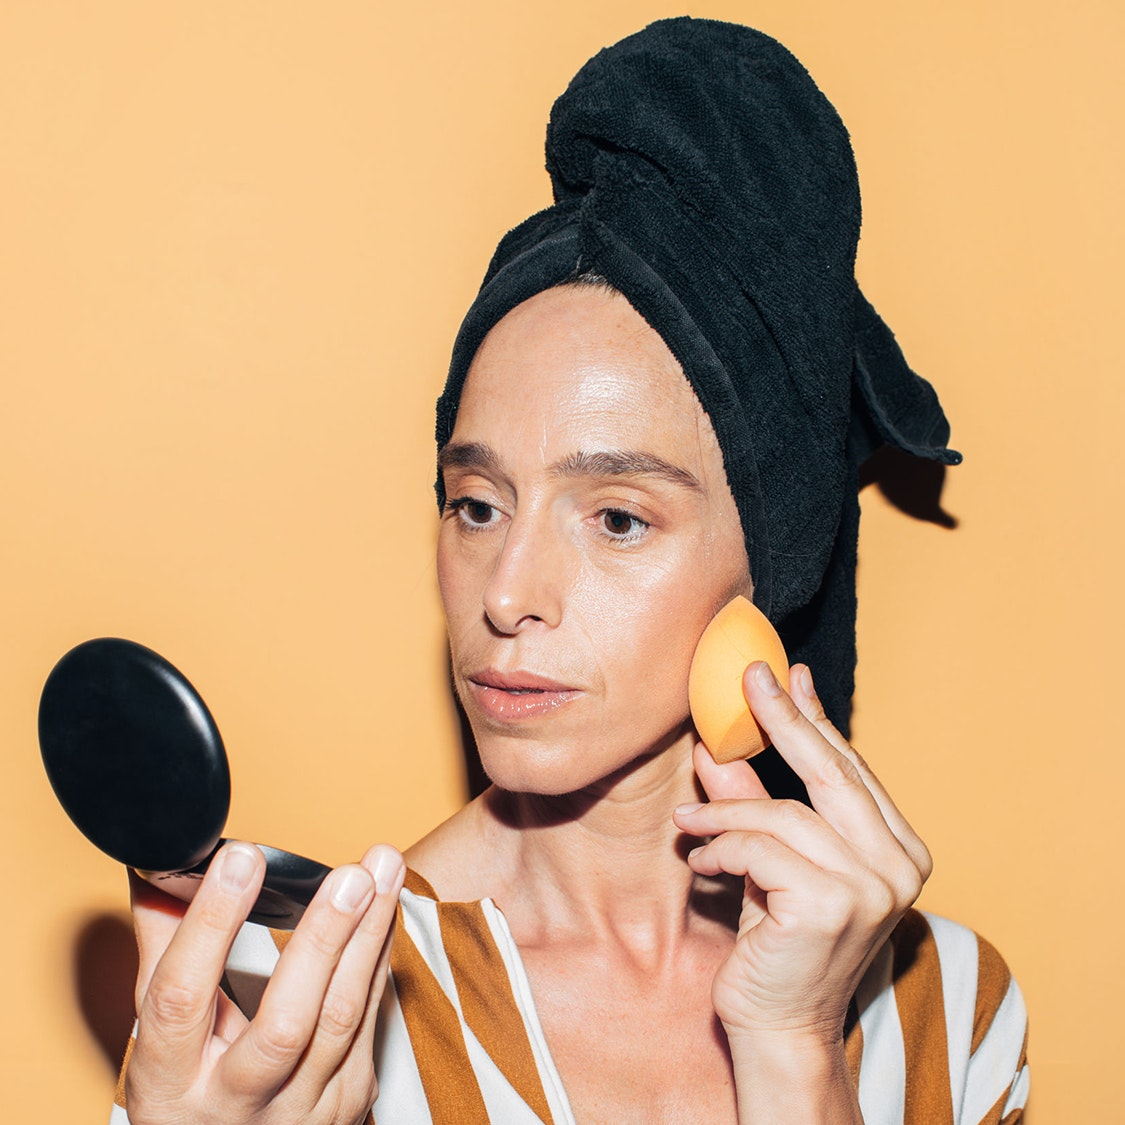 The 6 Best Foundations for Aging Skin, According to a Professional Makeup Artist